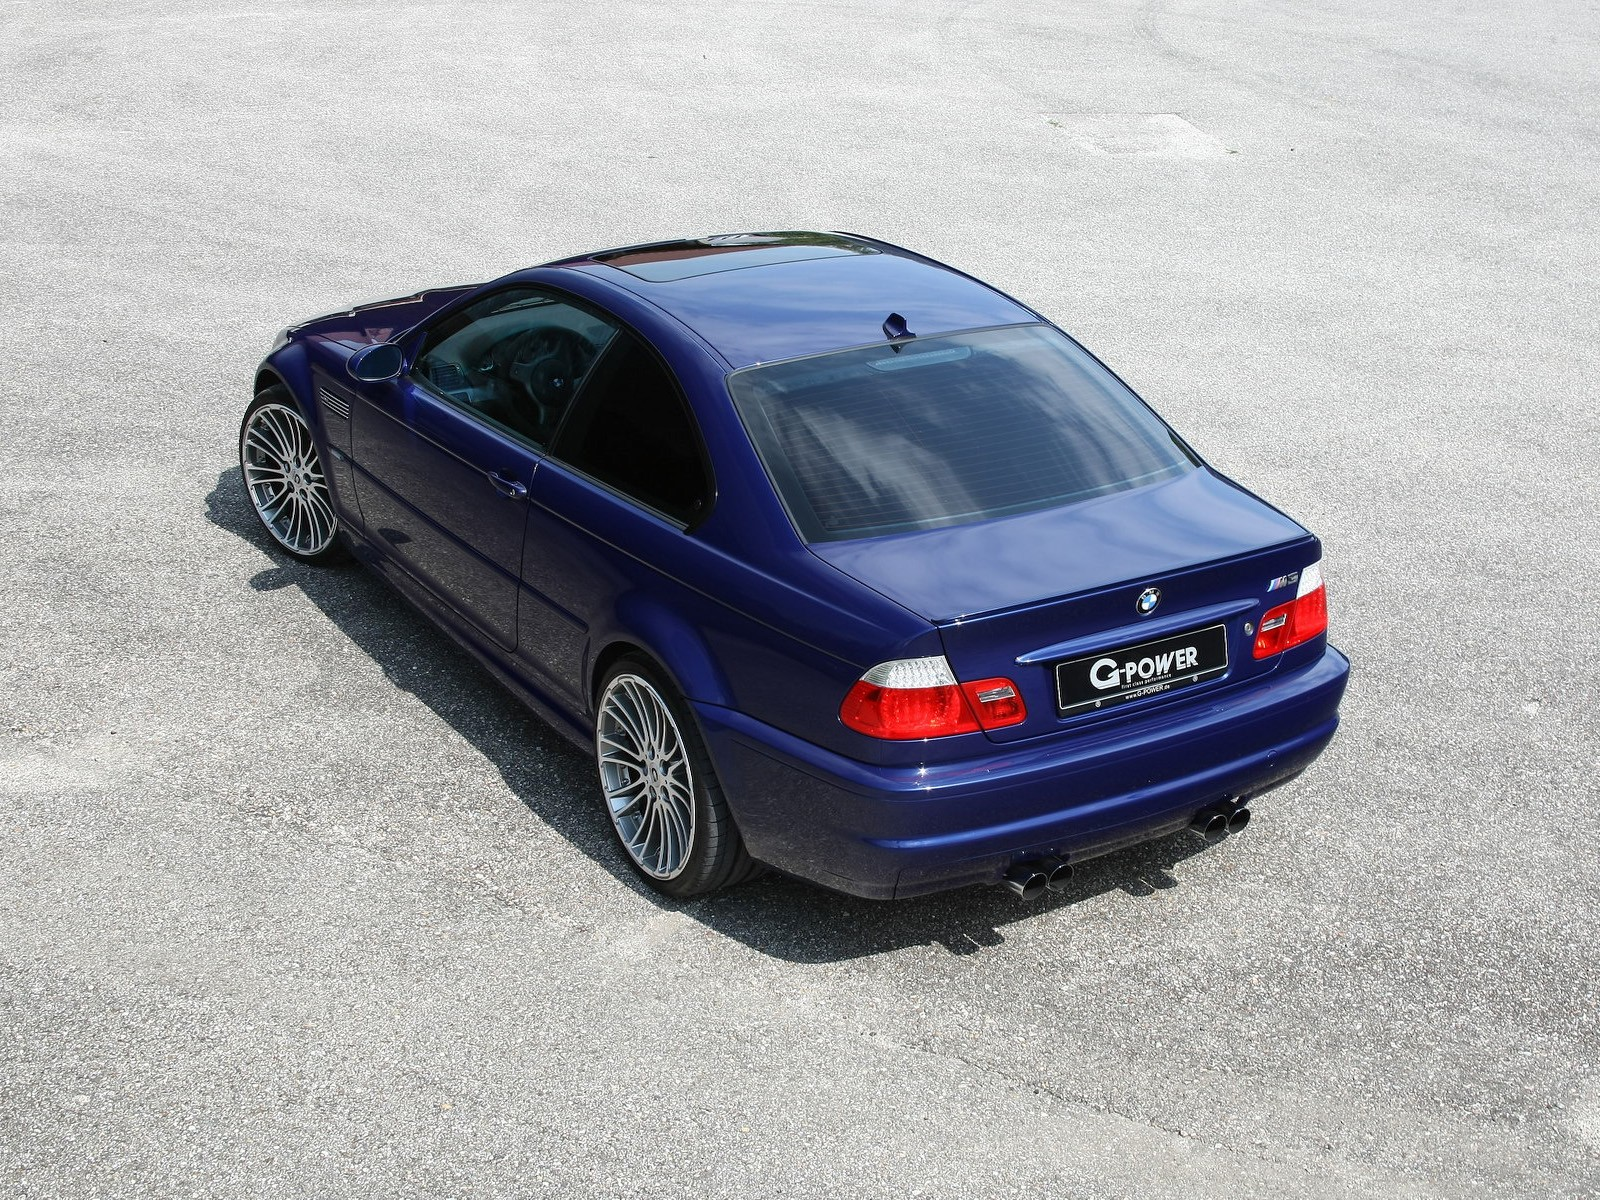 g-power-bmw-m3-e46-04.jpg